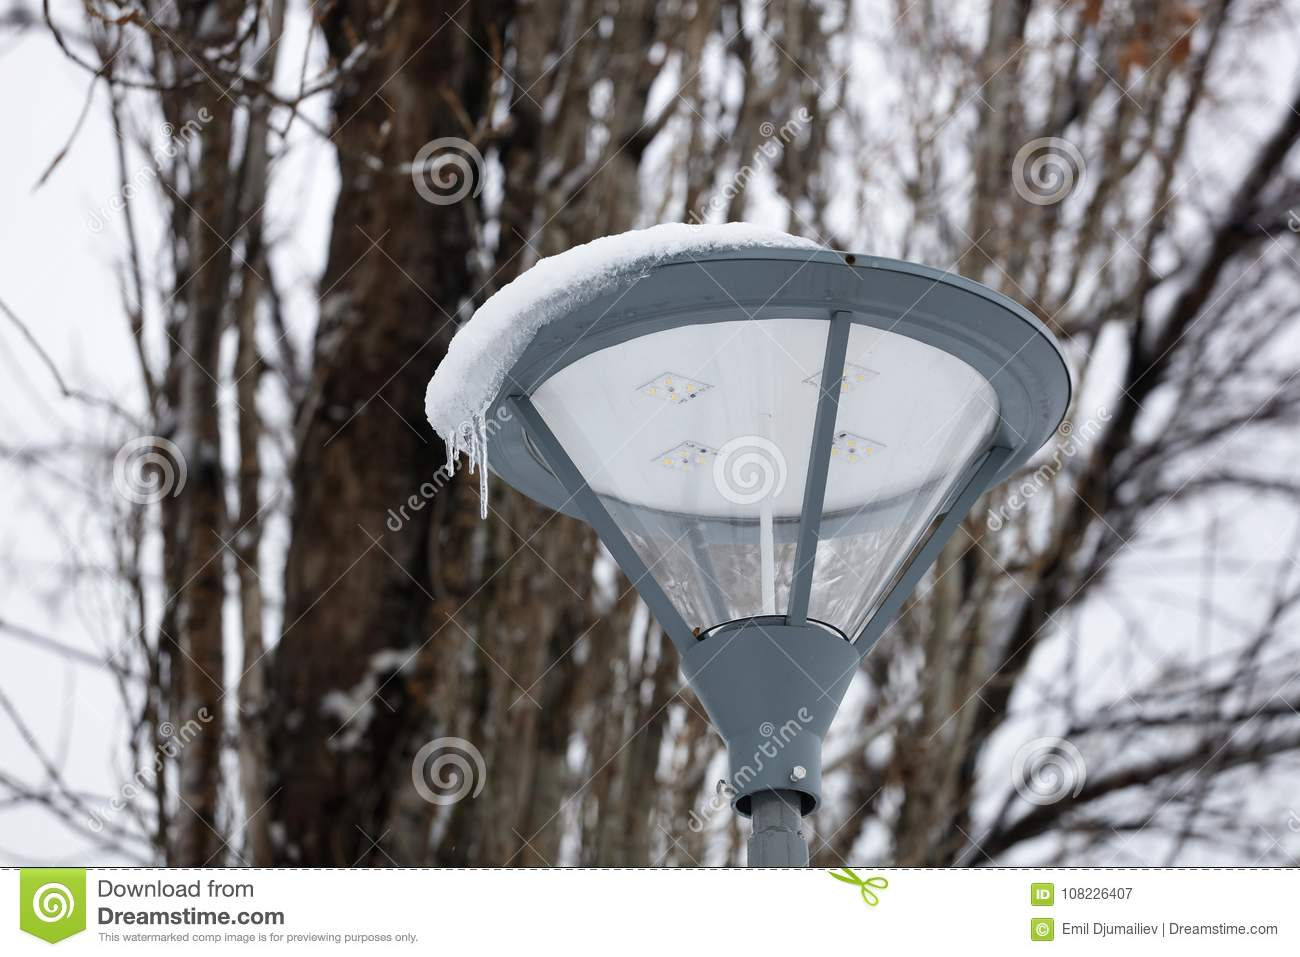 70bbc7711fde4 LED street light with grey pole and armature aigainst white winter sky.